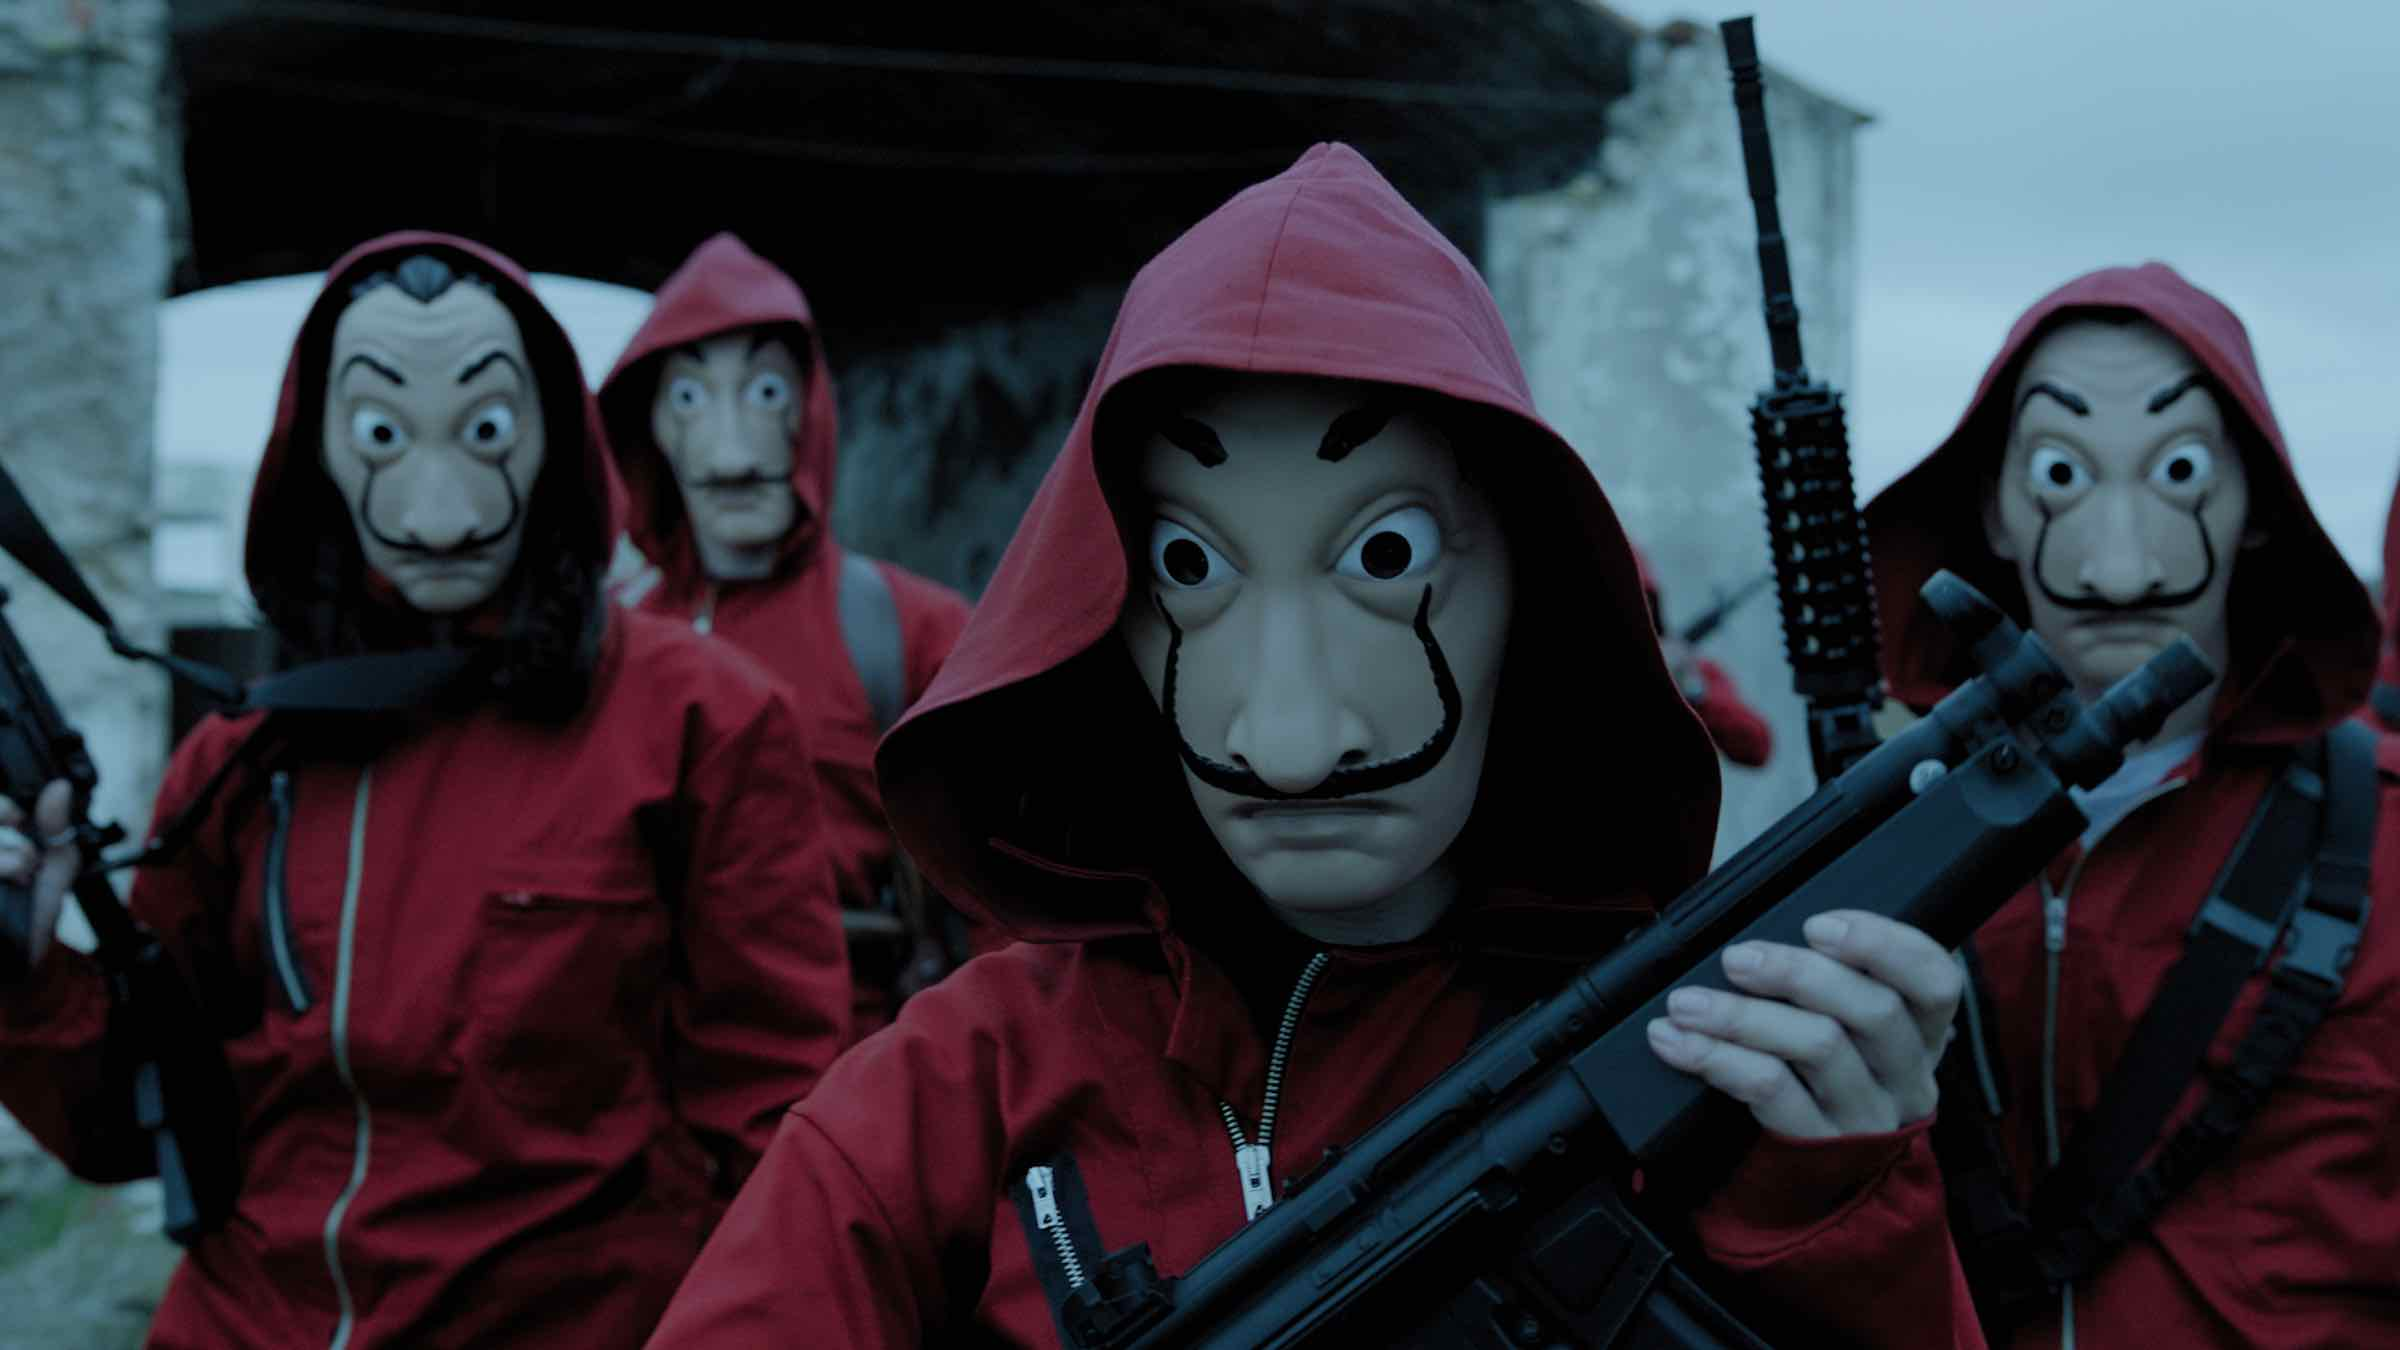 The hottest theories about 'Money Heist' season 4